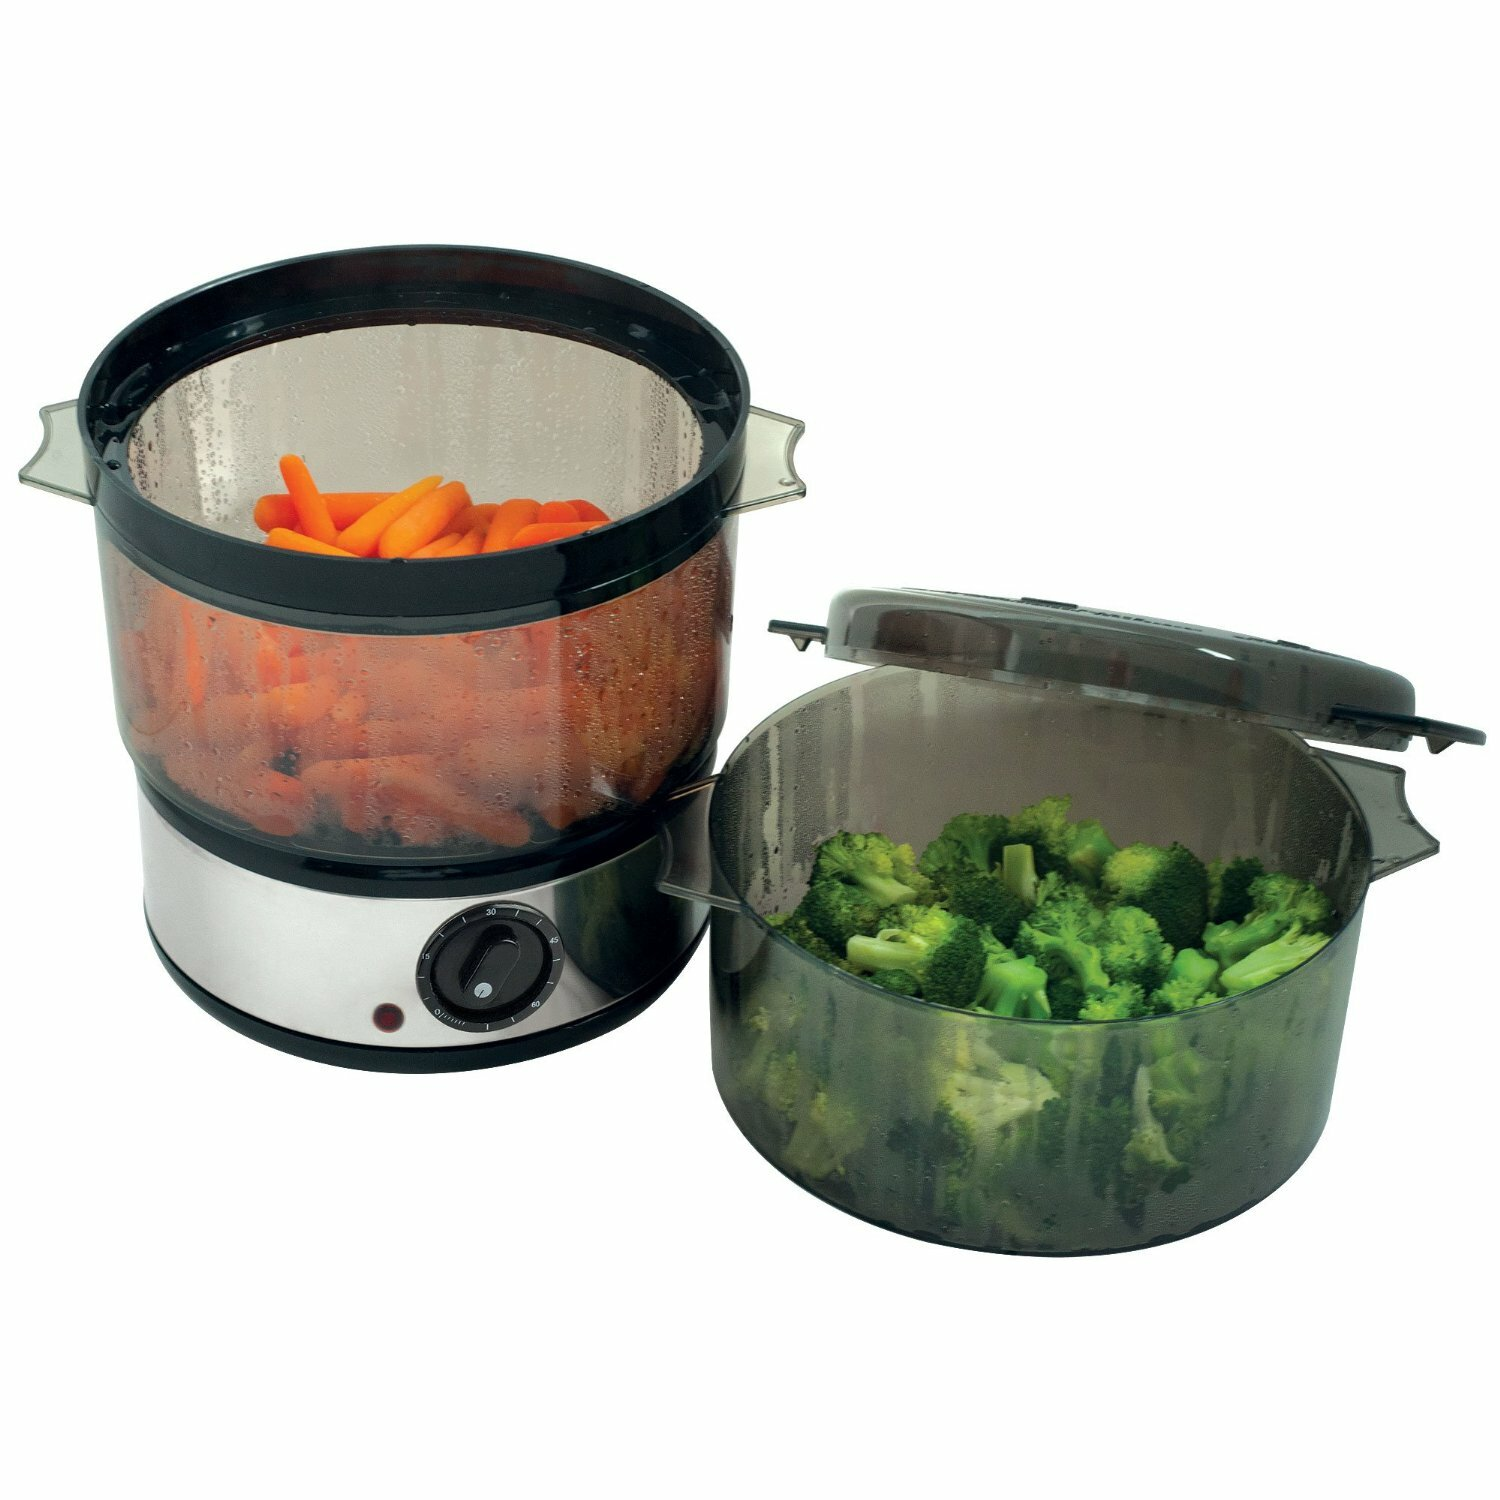 Kitchen Living Food Steamer: Chef Buddy 4-Quart Food Steamer & Reviews